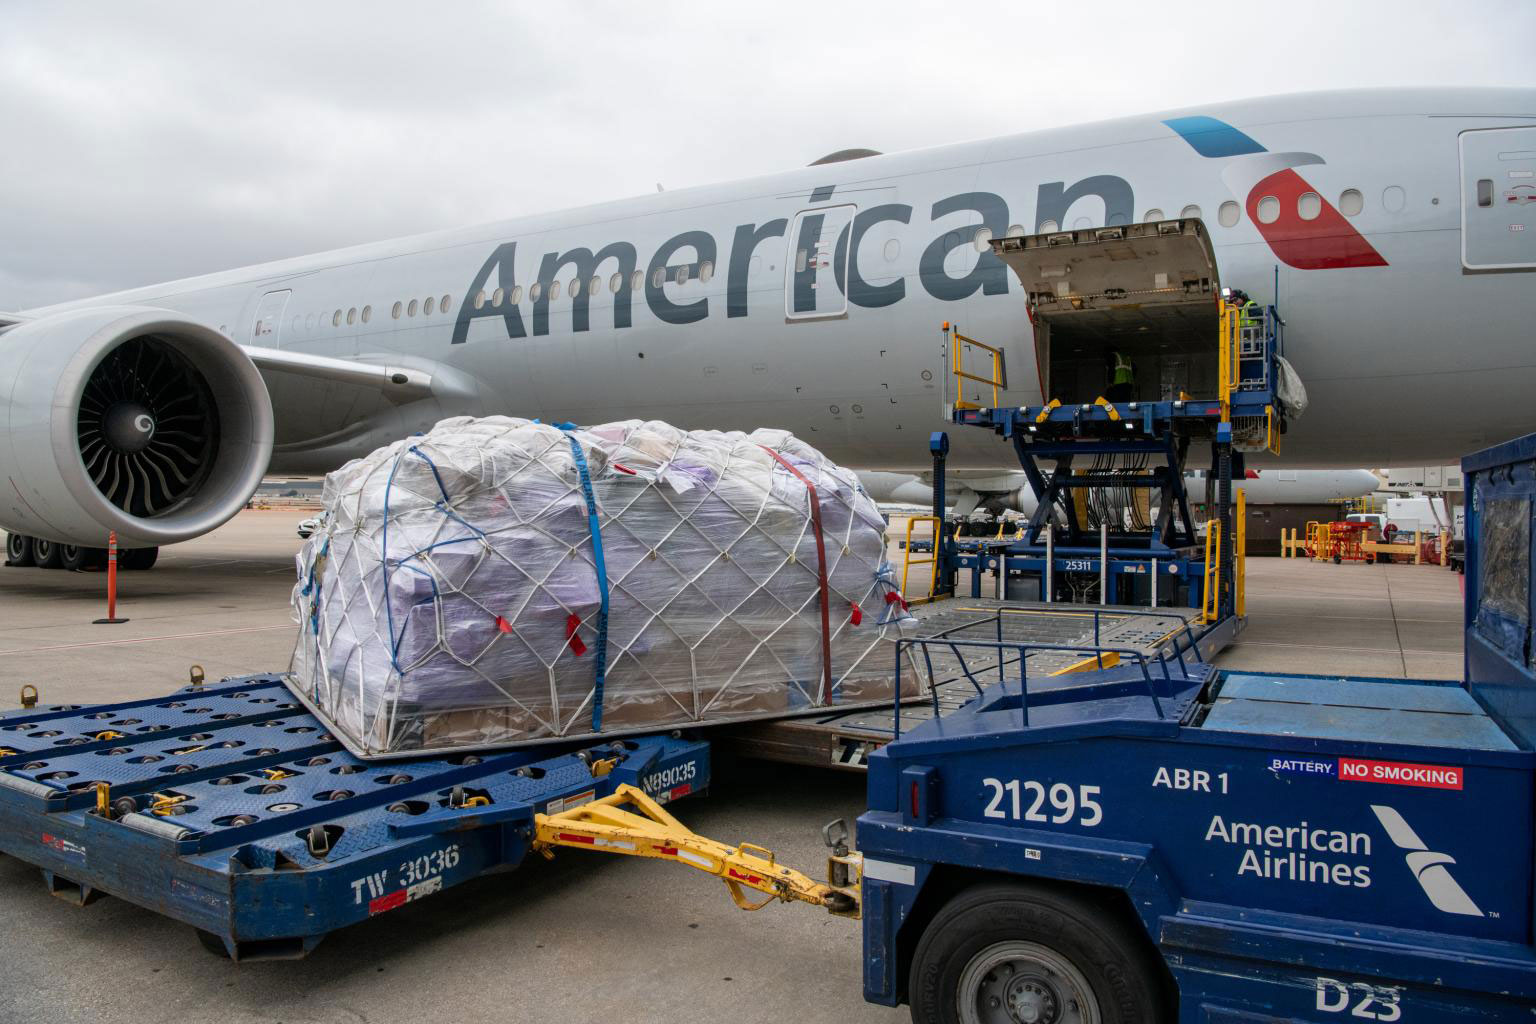 American Airlines' first cargo-only flight before taking off from Dallas Fort Worth Airport to Frankfurt Airport on March 20